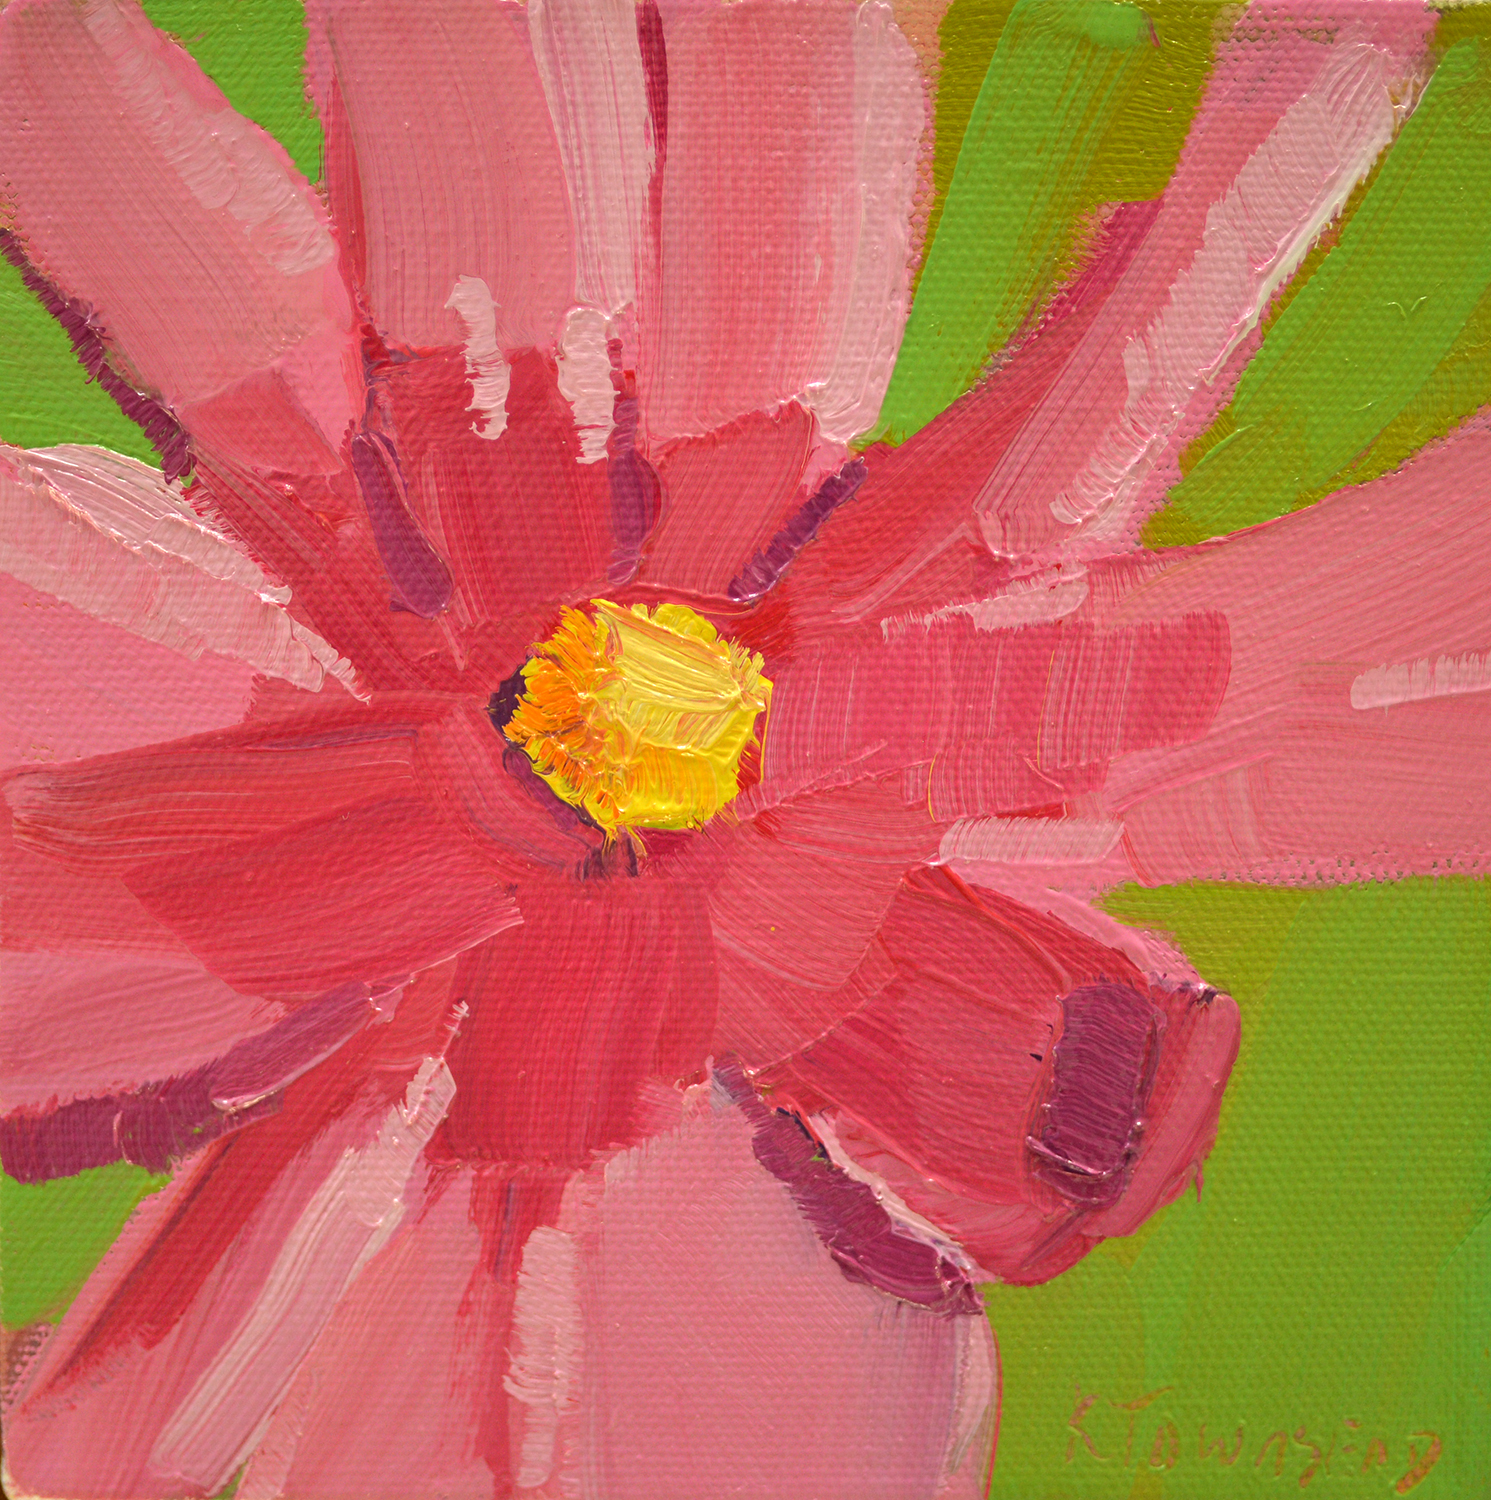 Flower Study - Pink Cosmos